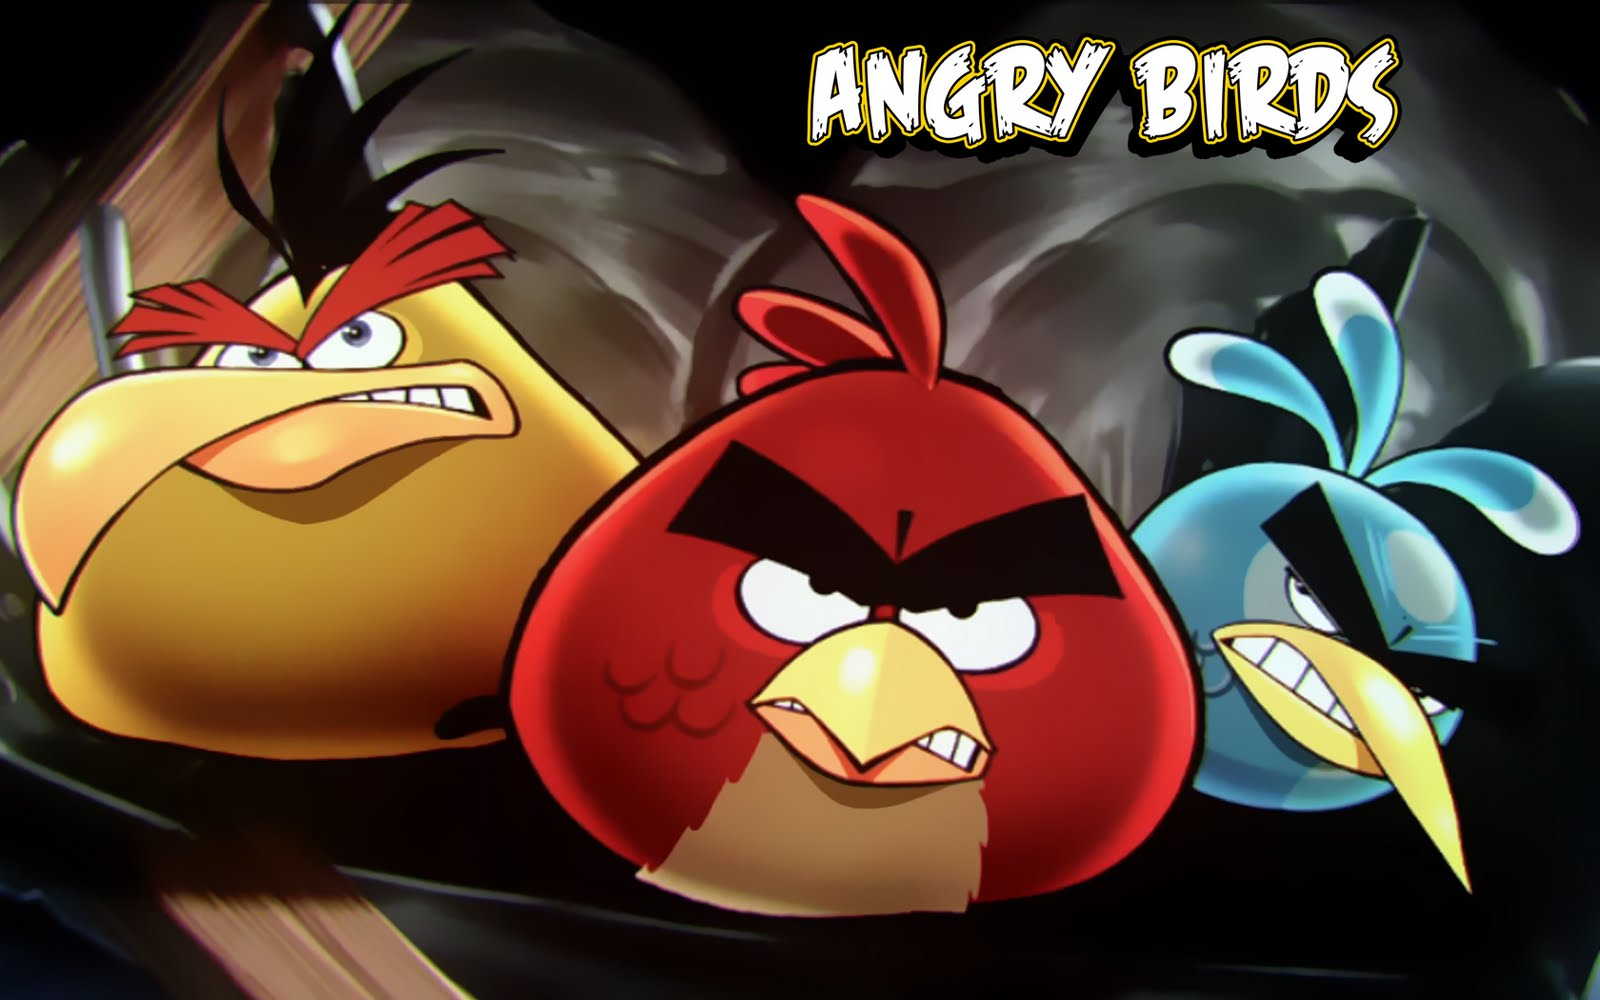 Free Download Angry Birds Picture Hd Dekstop Wallpapers Angry Birds Picture 1600x1000 For Your Desktop Mobile Tablet Explore 47 Angry Birds Wallpaper Free Download Angry Birds Wallpaper Free Download